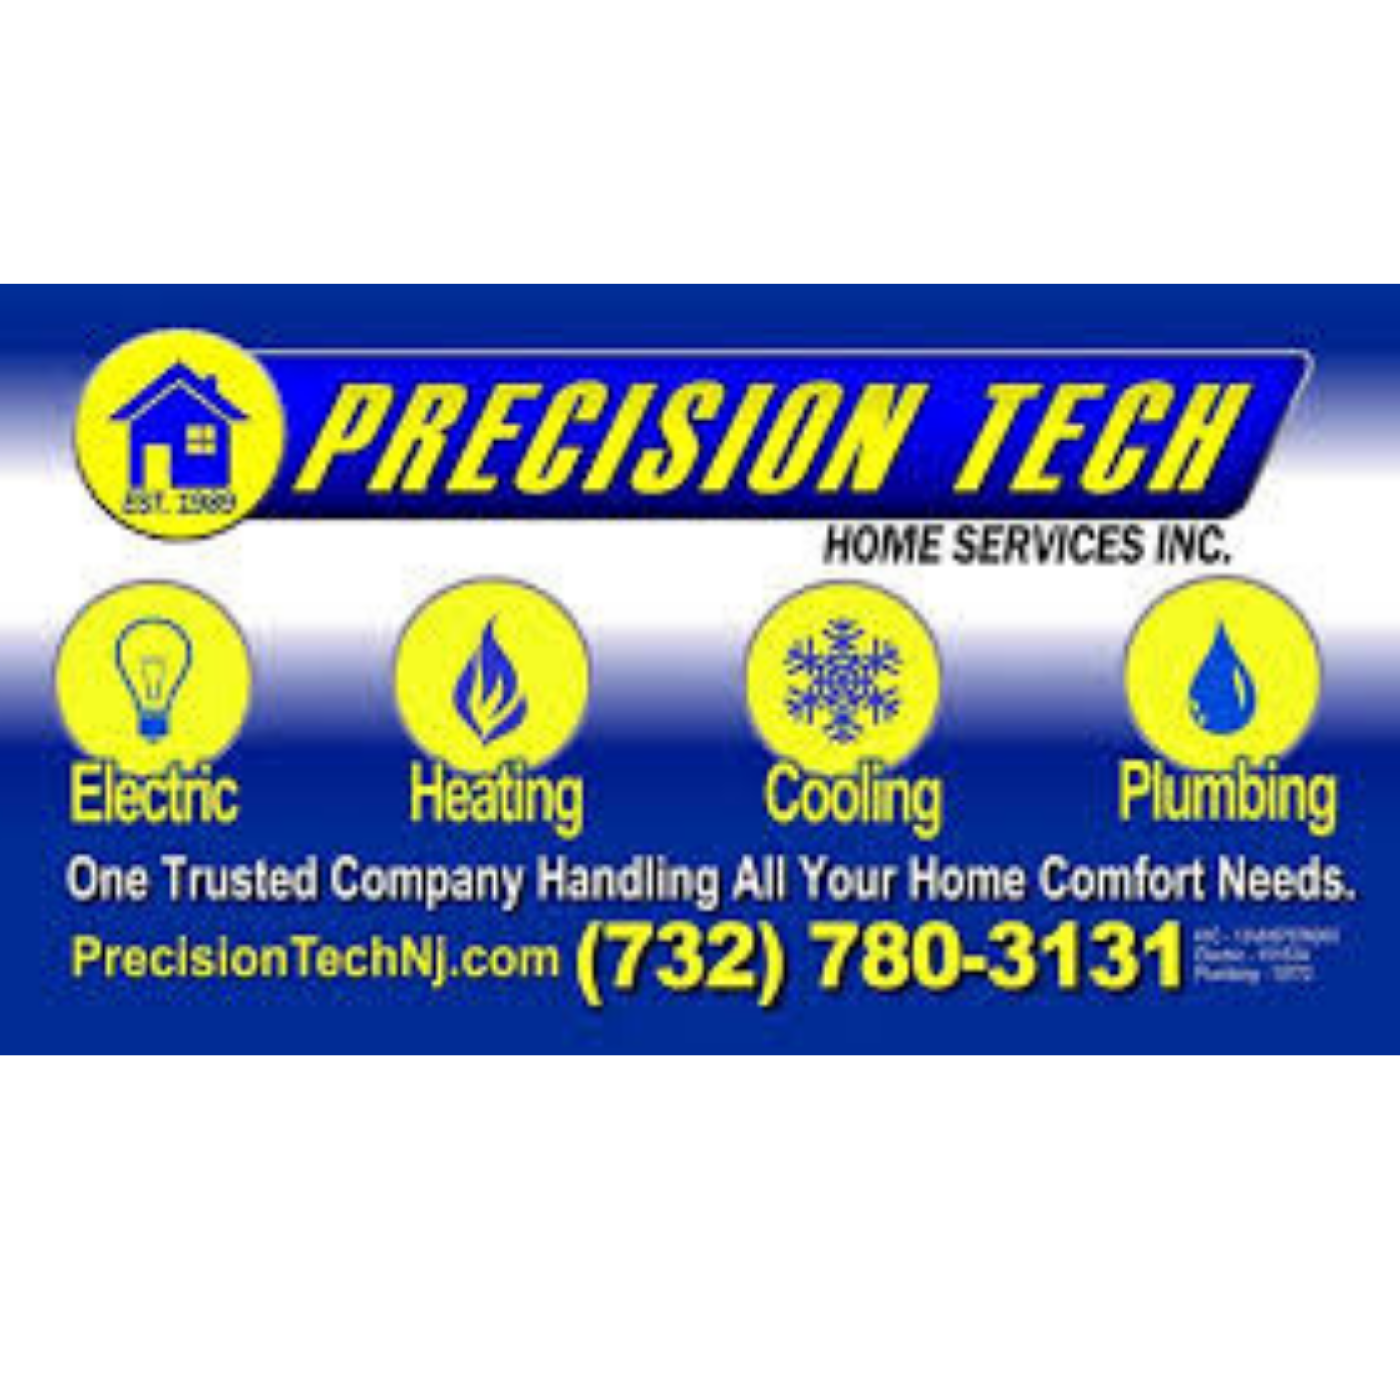 Affordable Home Services Nj Affordable Home Services In New Jersey In 2020 Heating Repair Hvac Services Hvac Maintenance